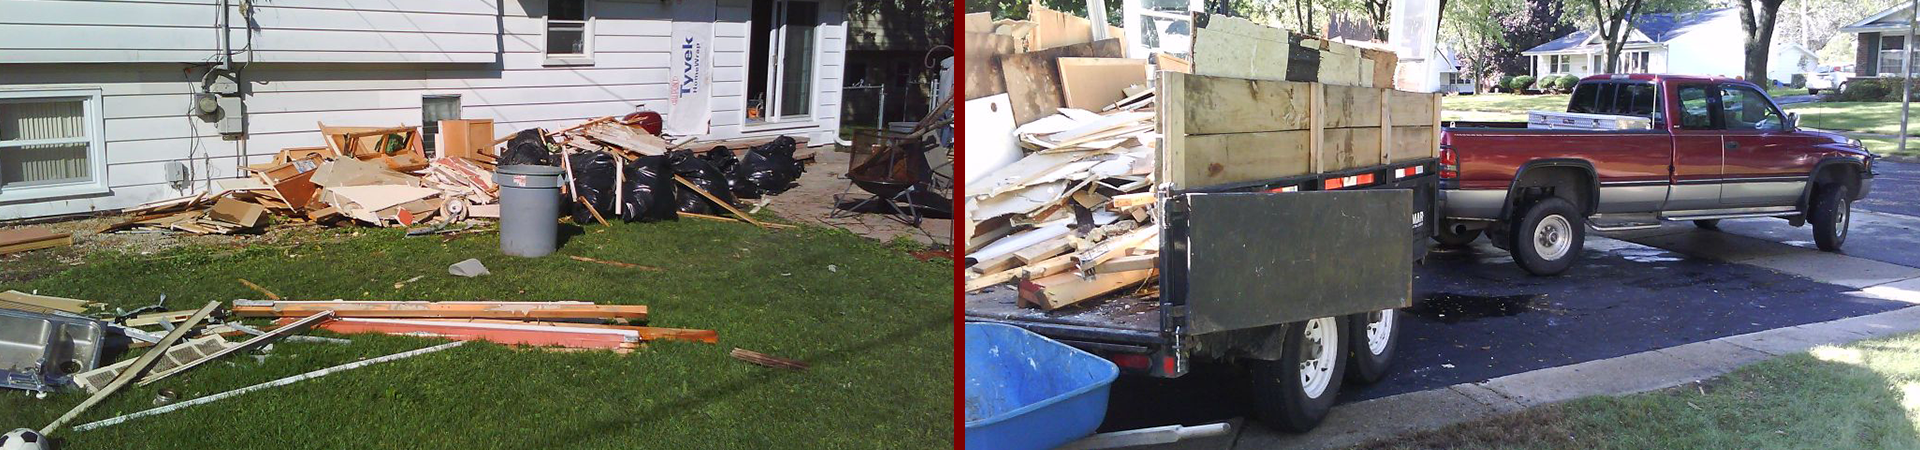 Junk Removal in Chicago, IL